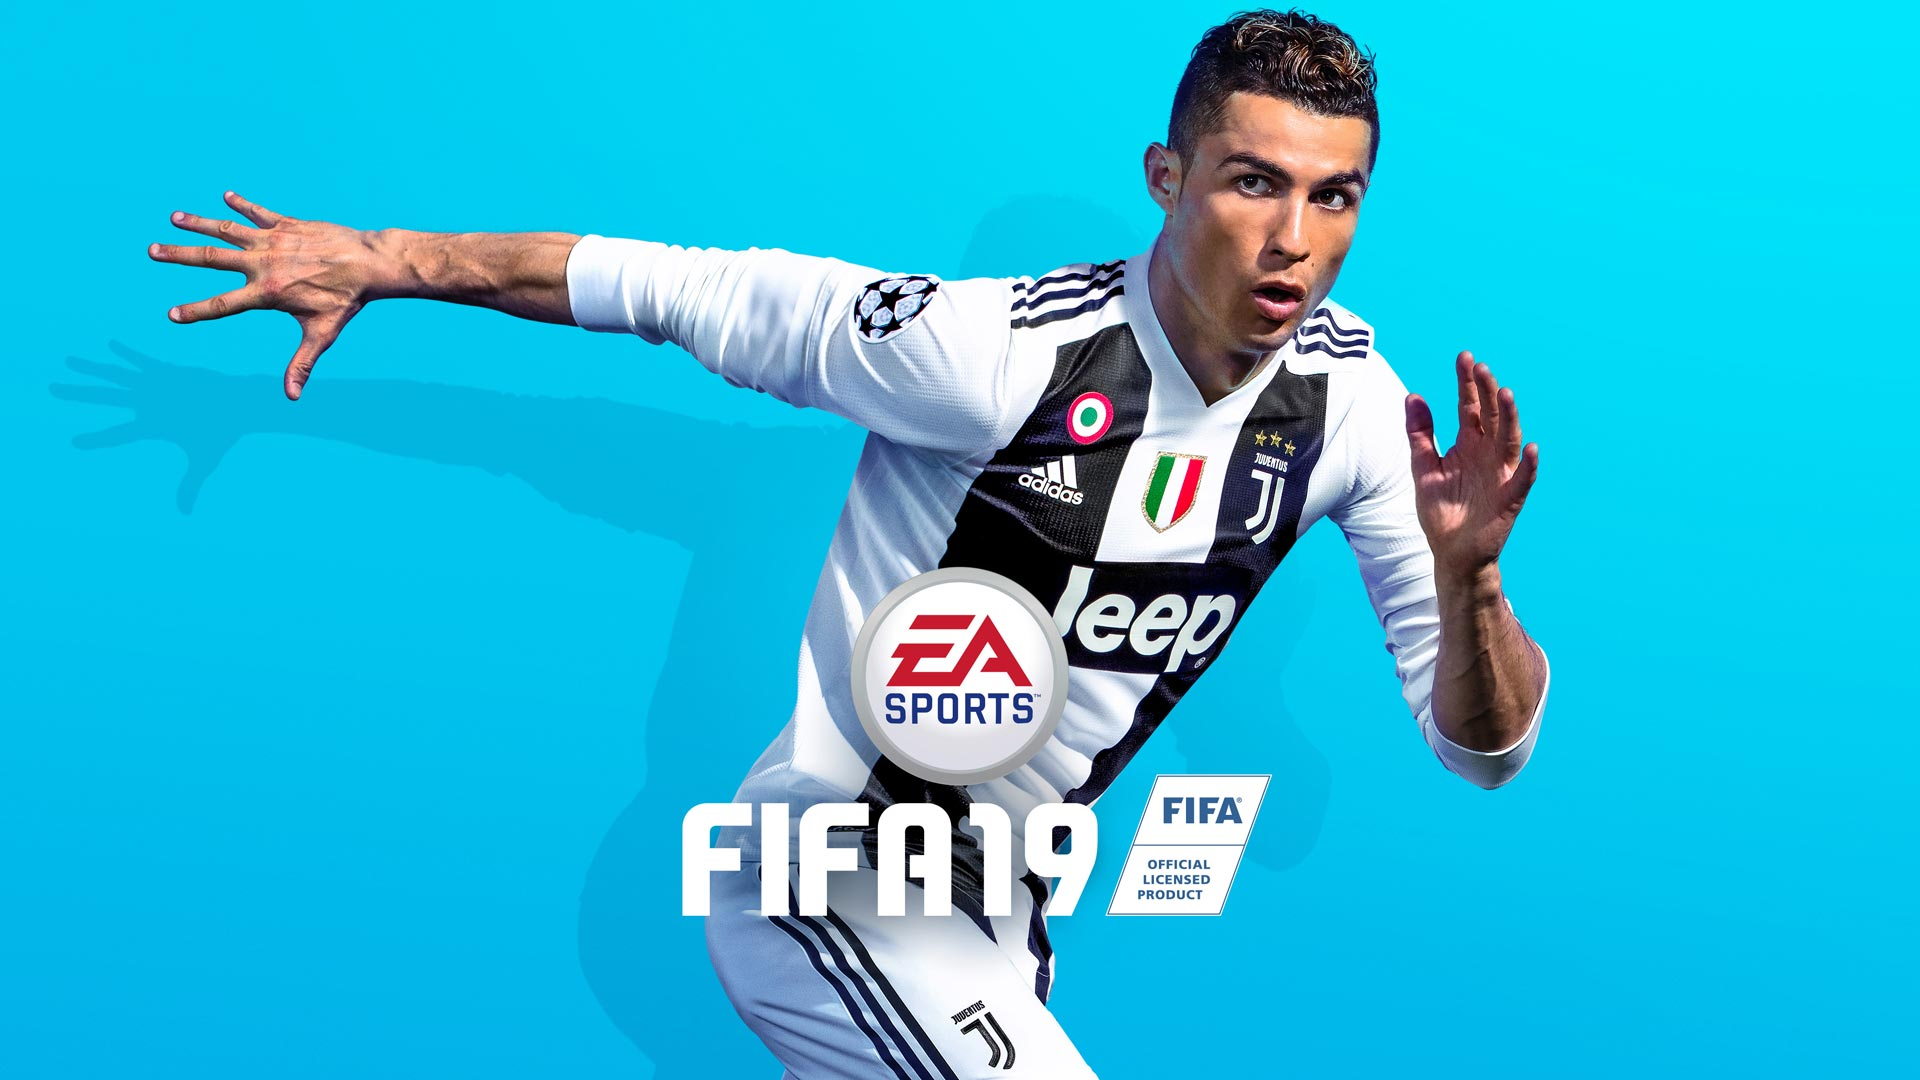 FIFA 19 removes Ronaldo from cover